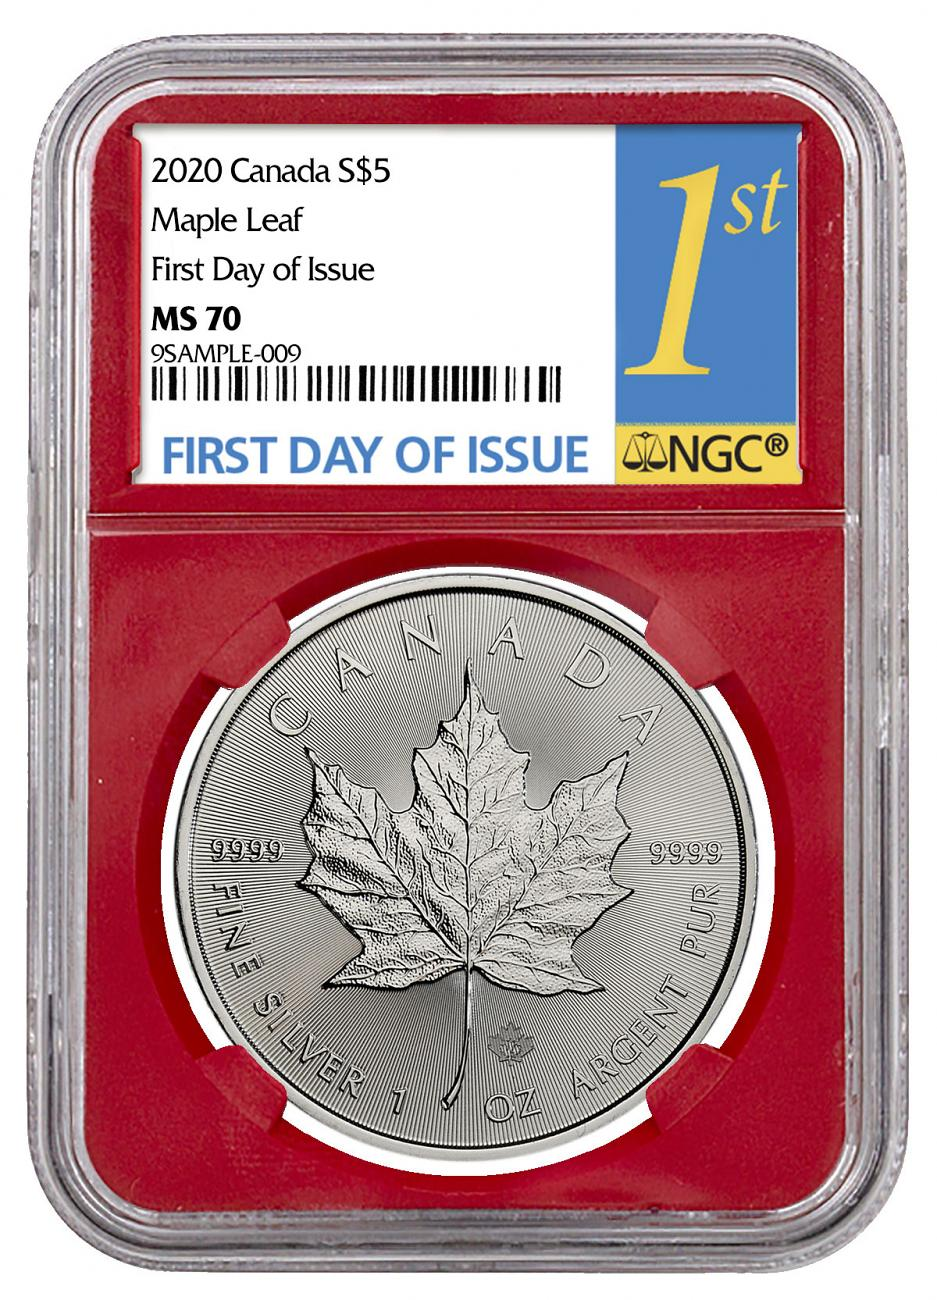 2020 Canada 1 oz Silver Maple Leaf $5 Coin NGC MS70 FDI Red Core Holder